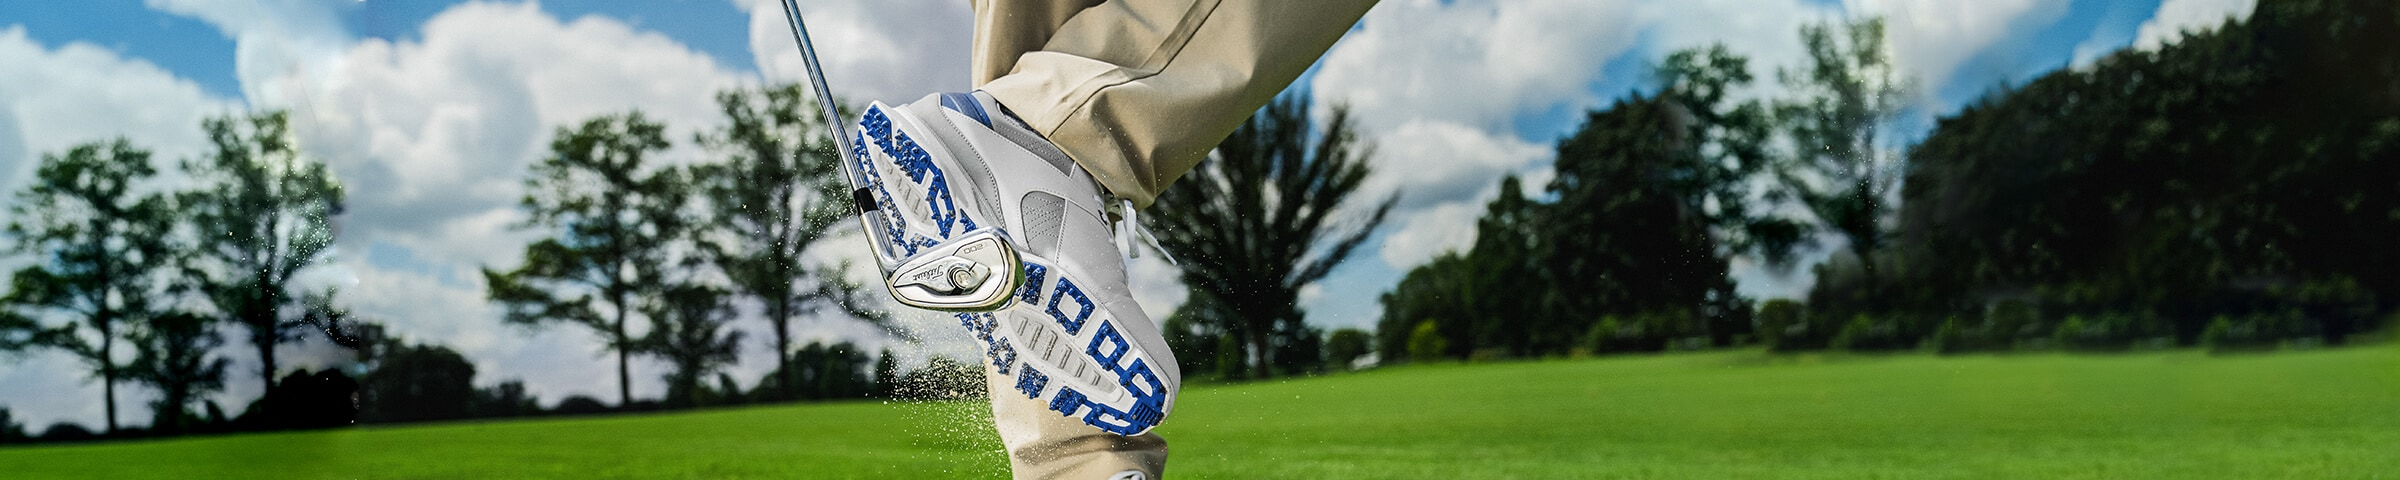 FootJoy Spikeless Golf Shoes